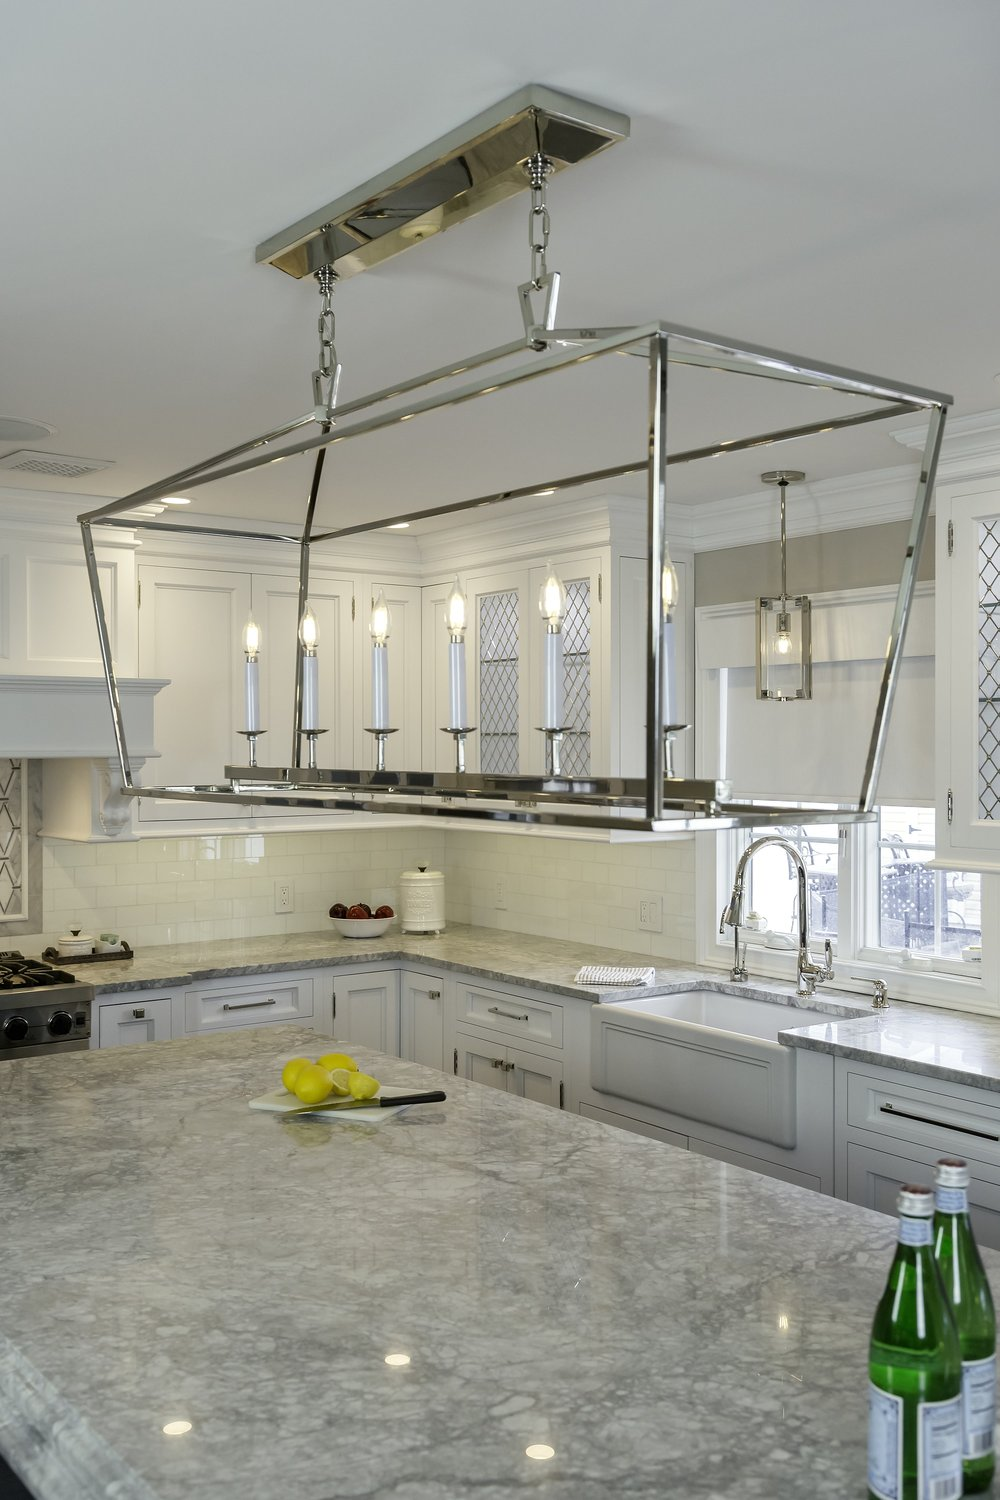 Transitional style kitchen with candle chandelier and marble countertop